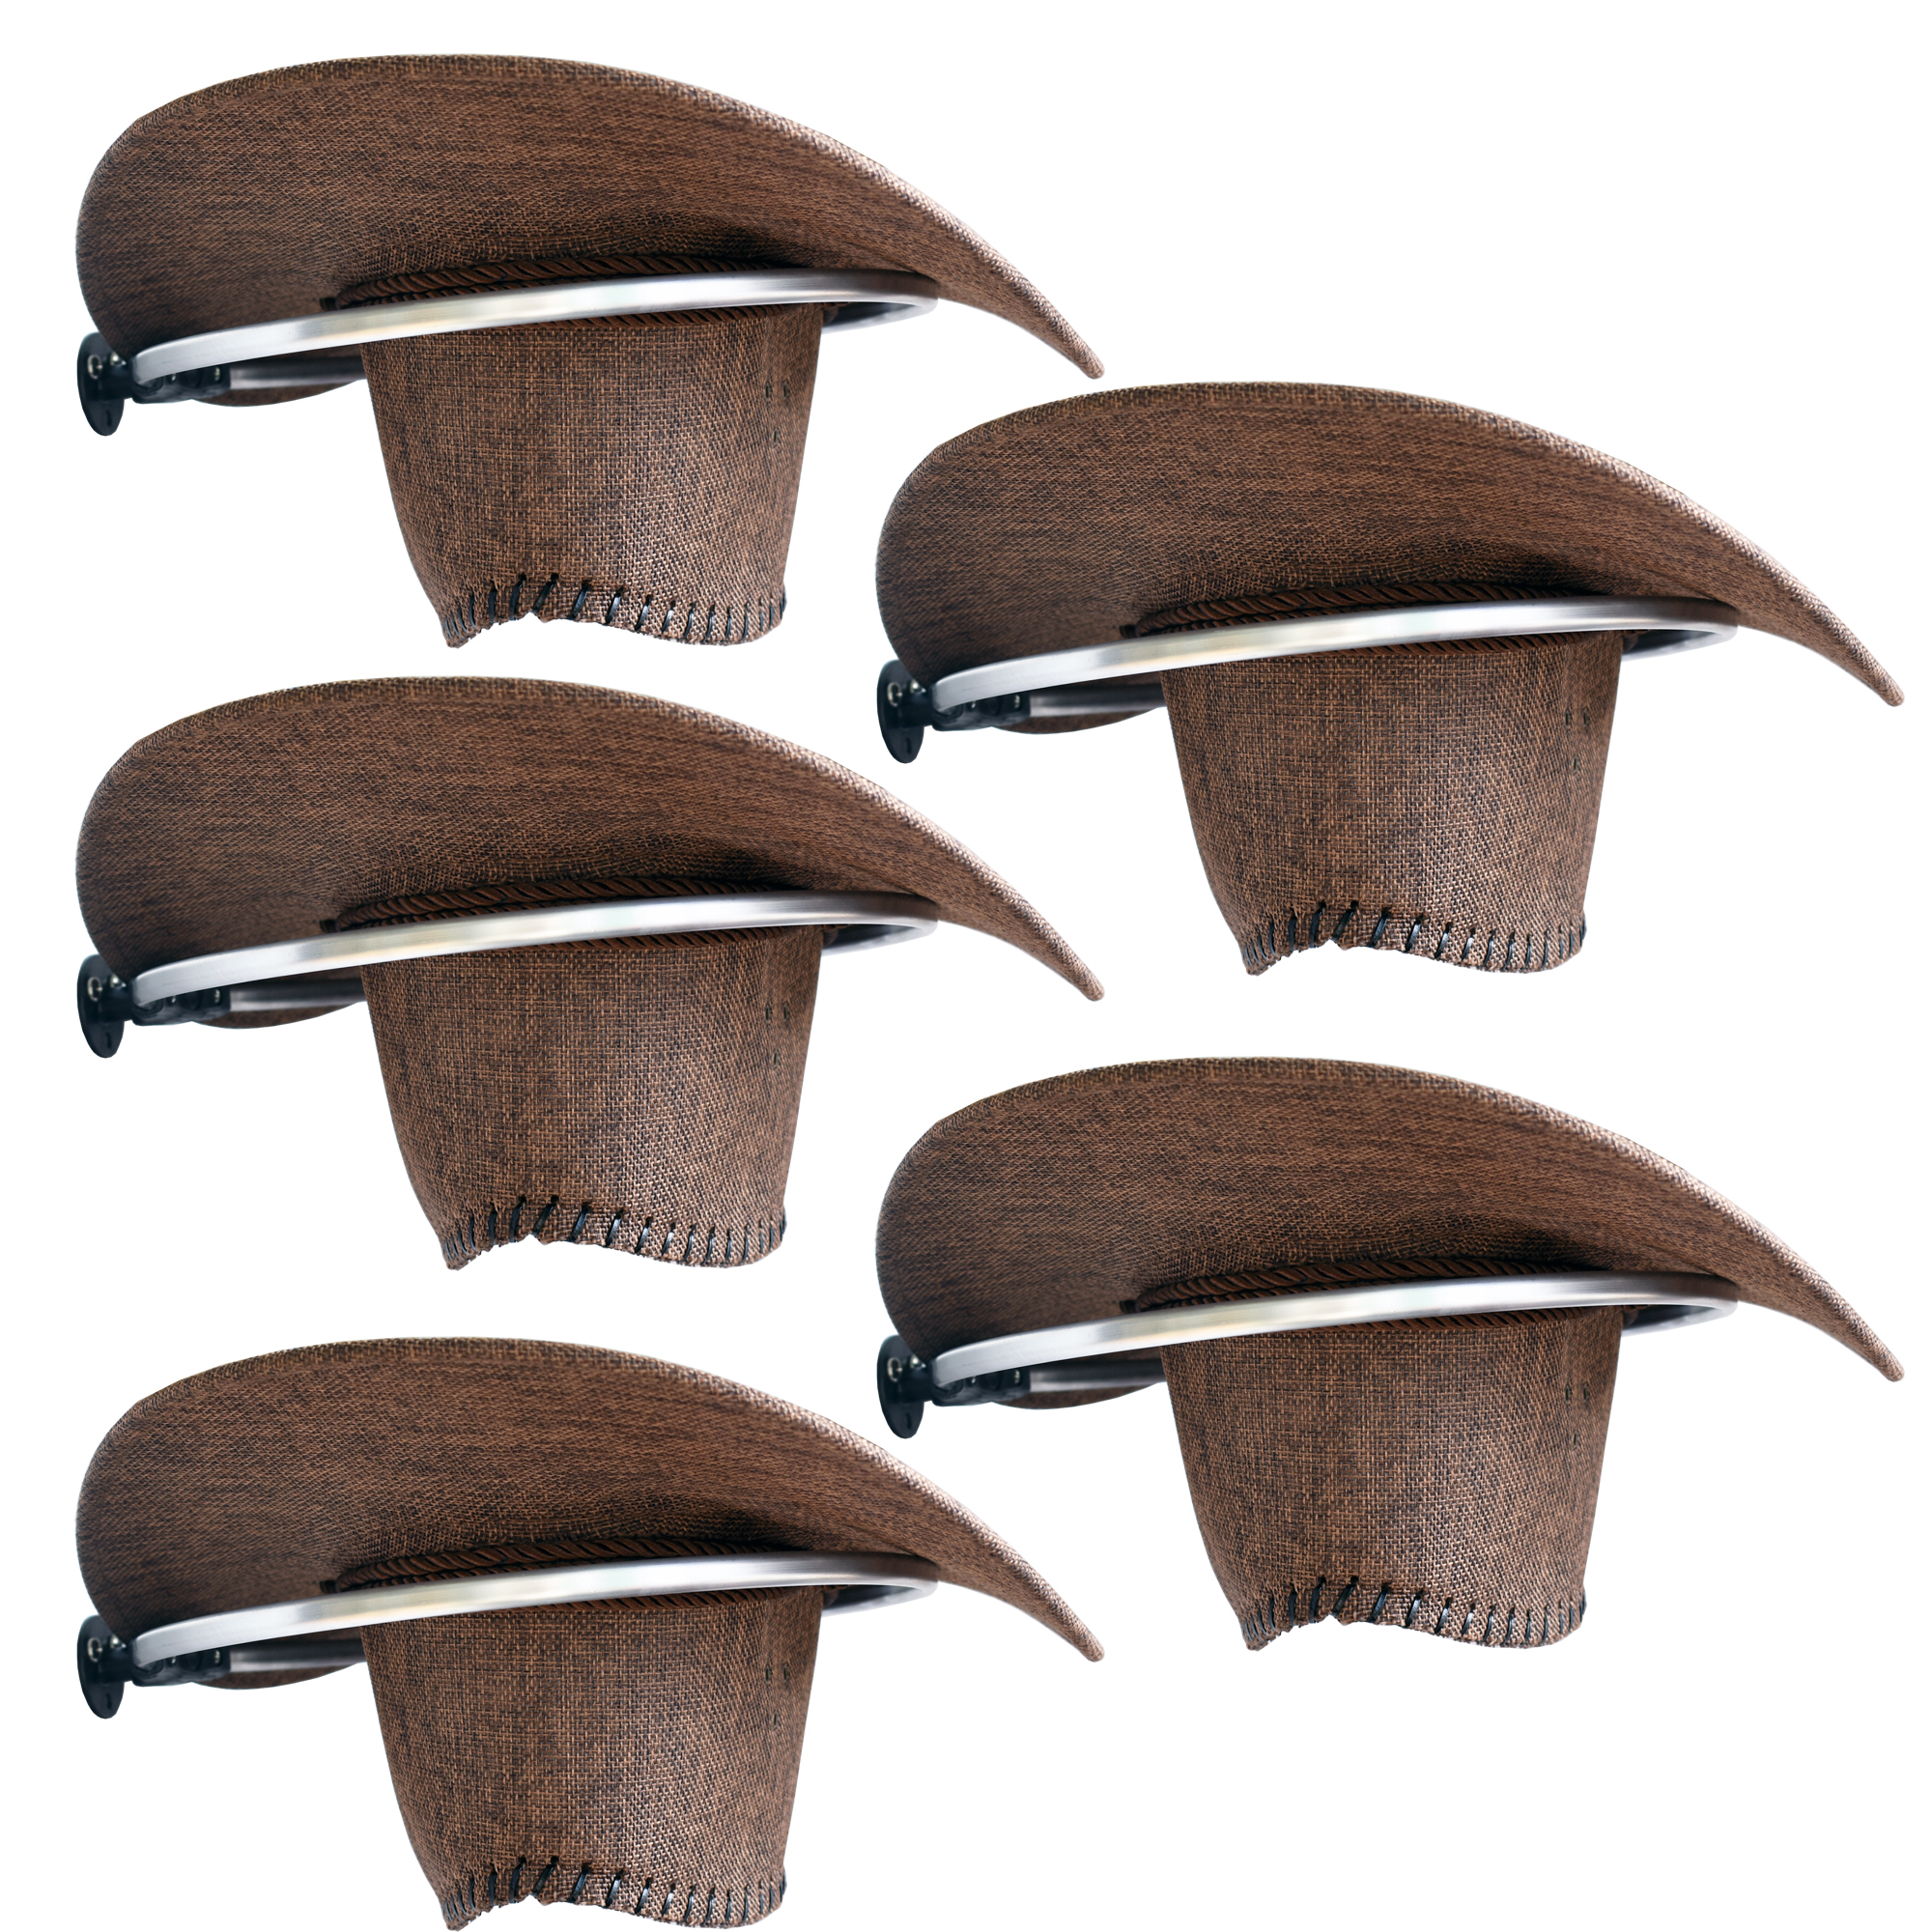 Cowboy Hat Rack Cowboy Hat Holder Organizer 5/PK - No Falling - Big Round Rack